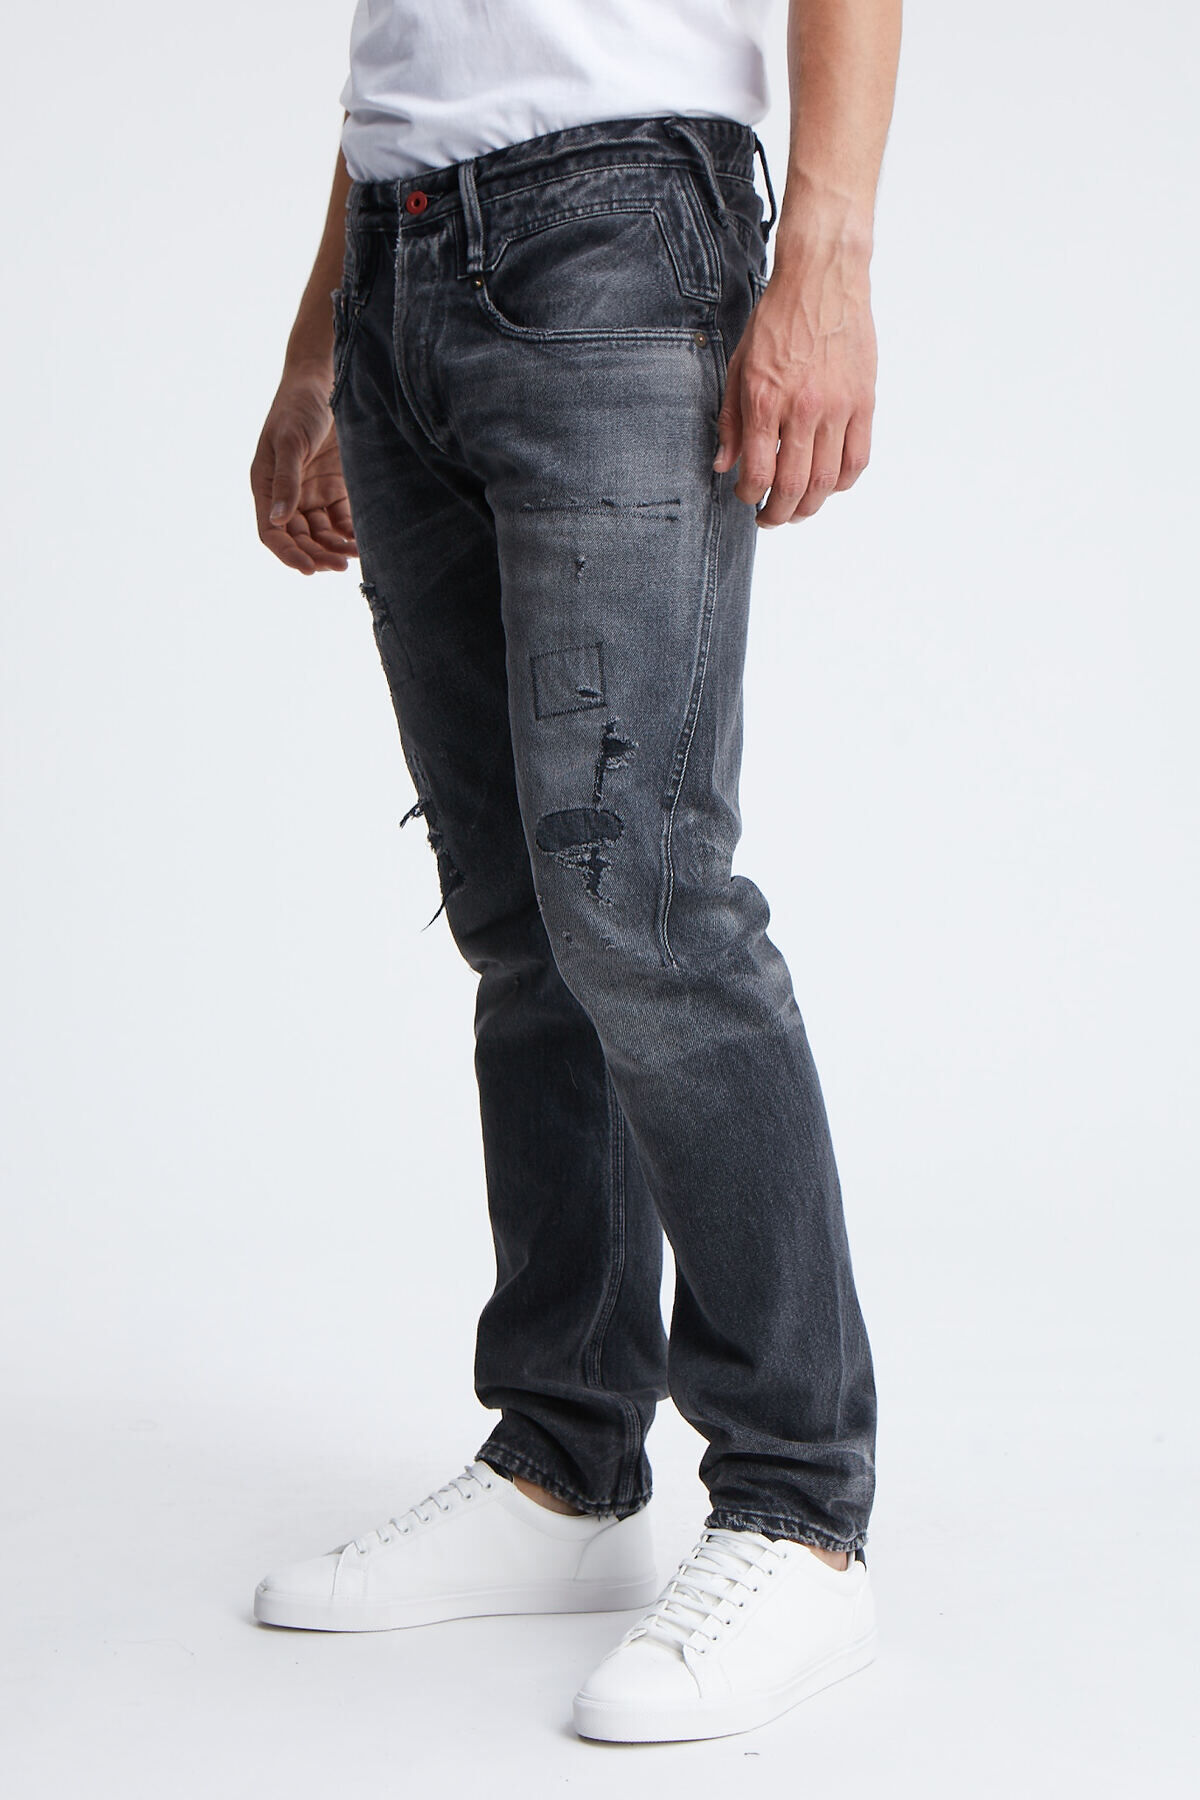 CROSSBACK Rip & Repair Black Japanese Denim - Carrot Fit